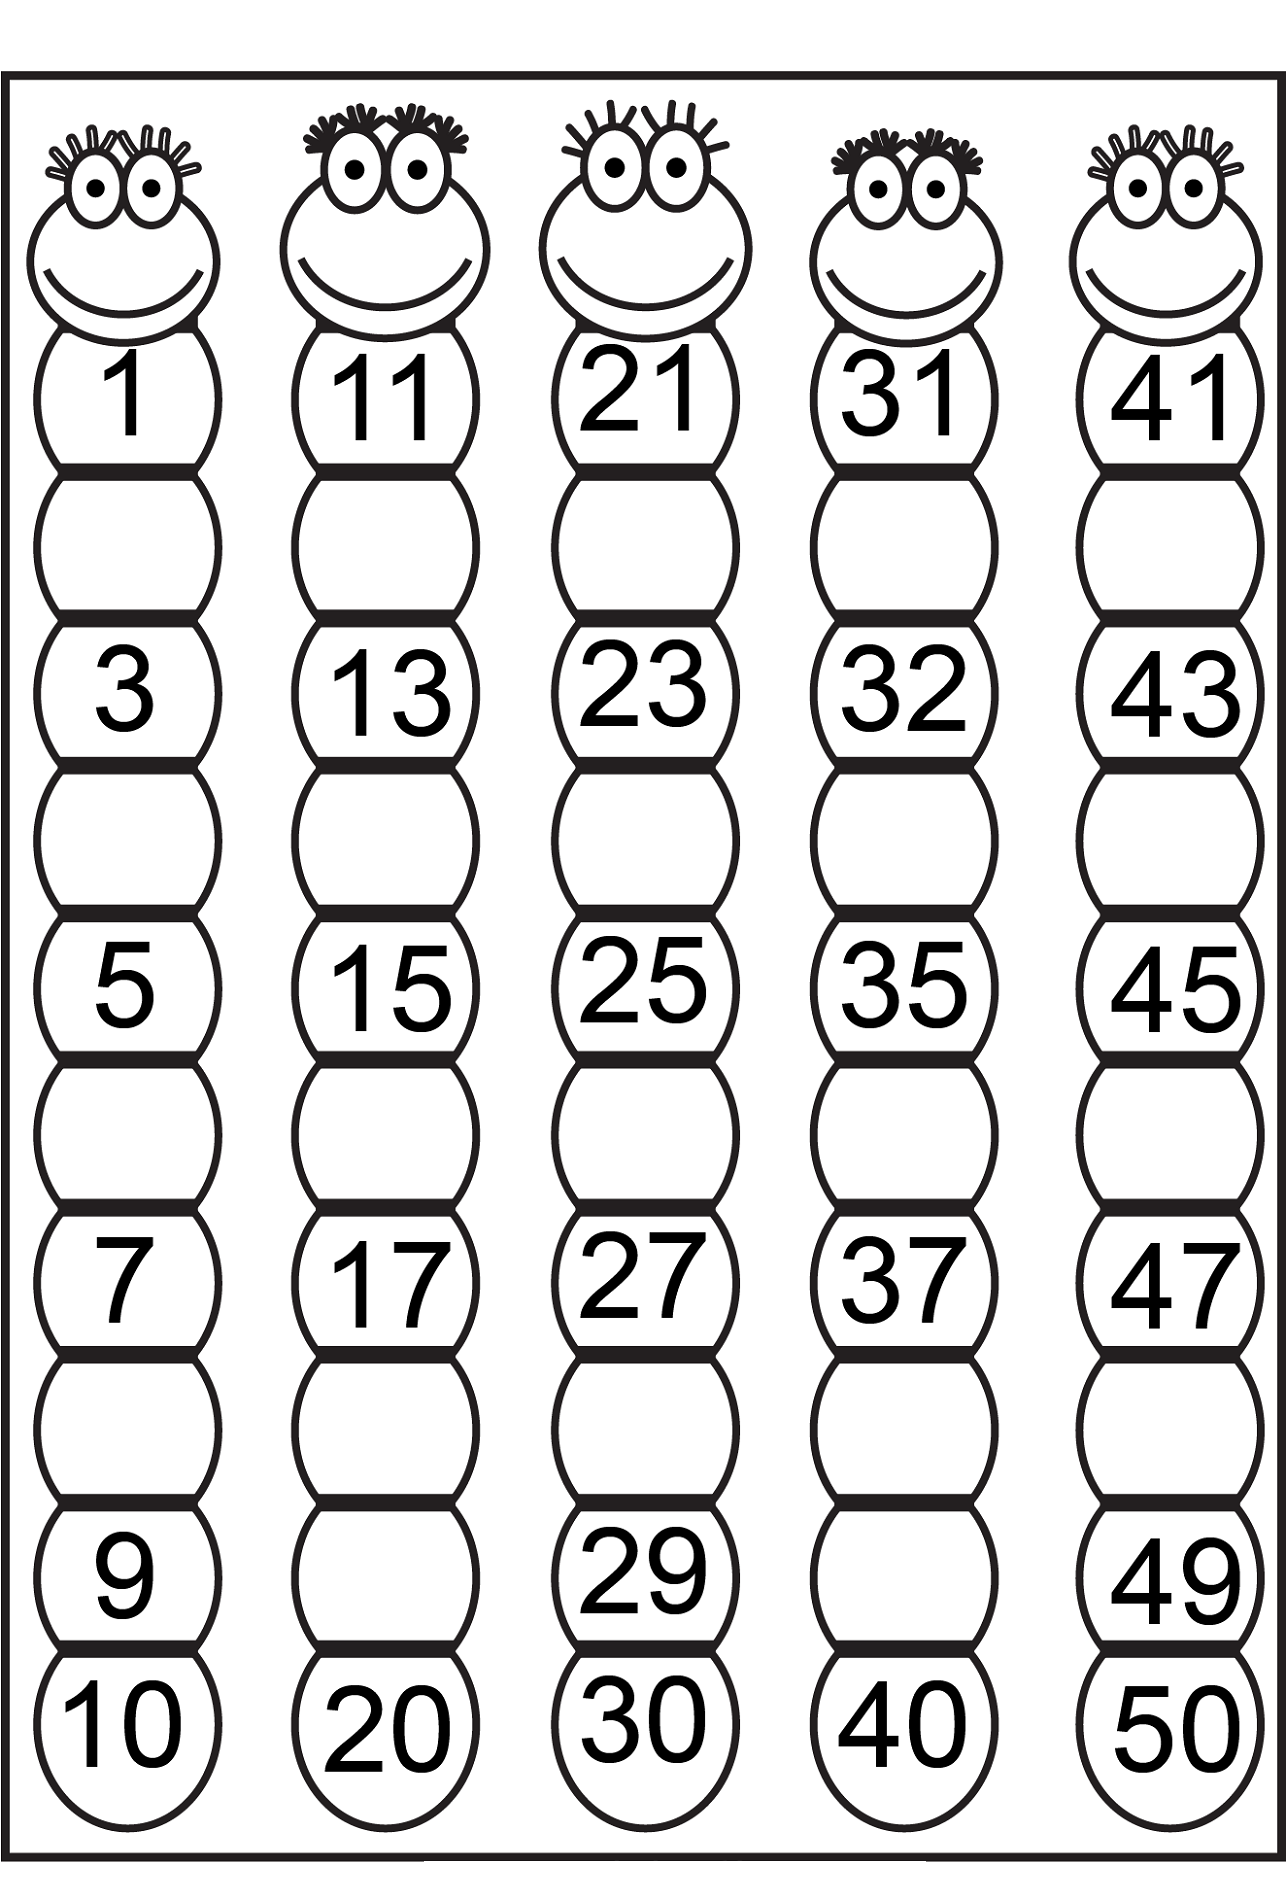 Number Charts 1-50 to Print | Activity Shelter